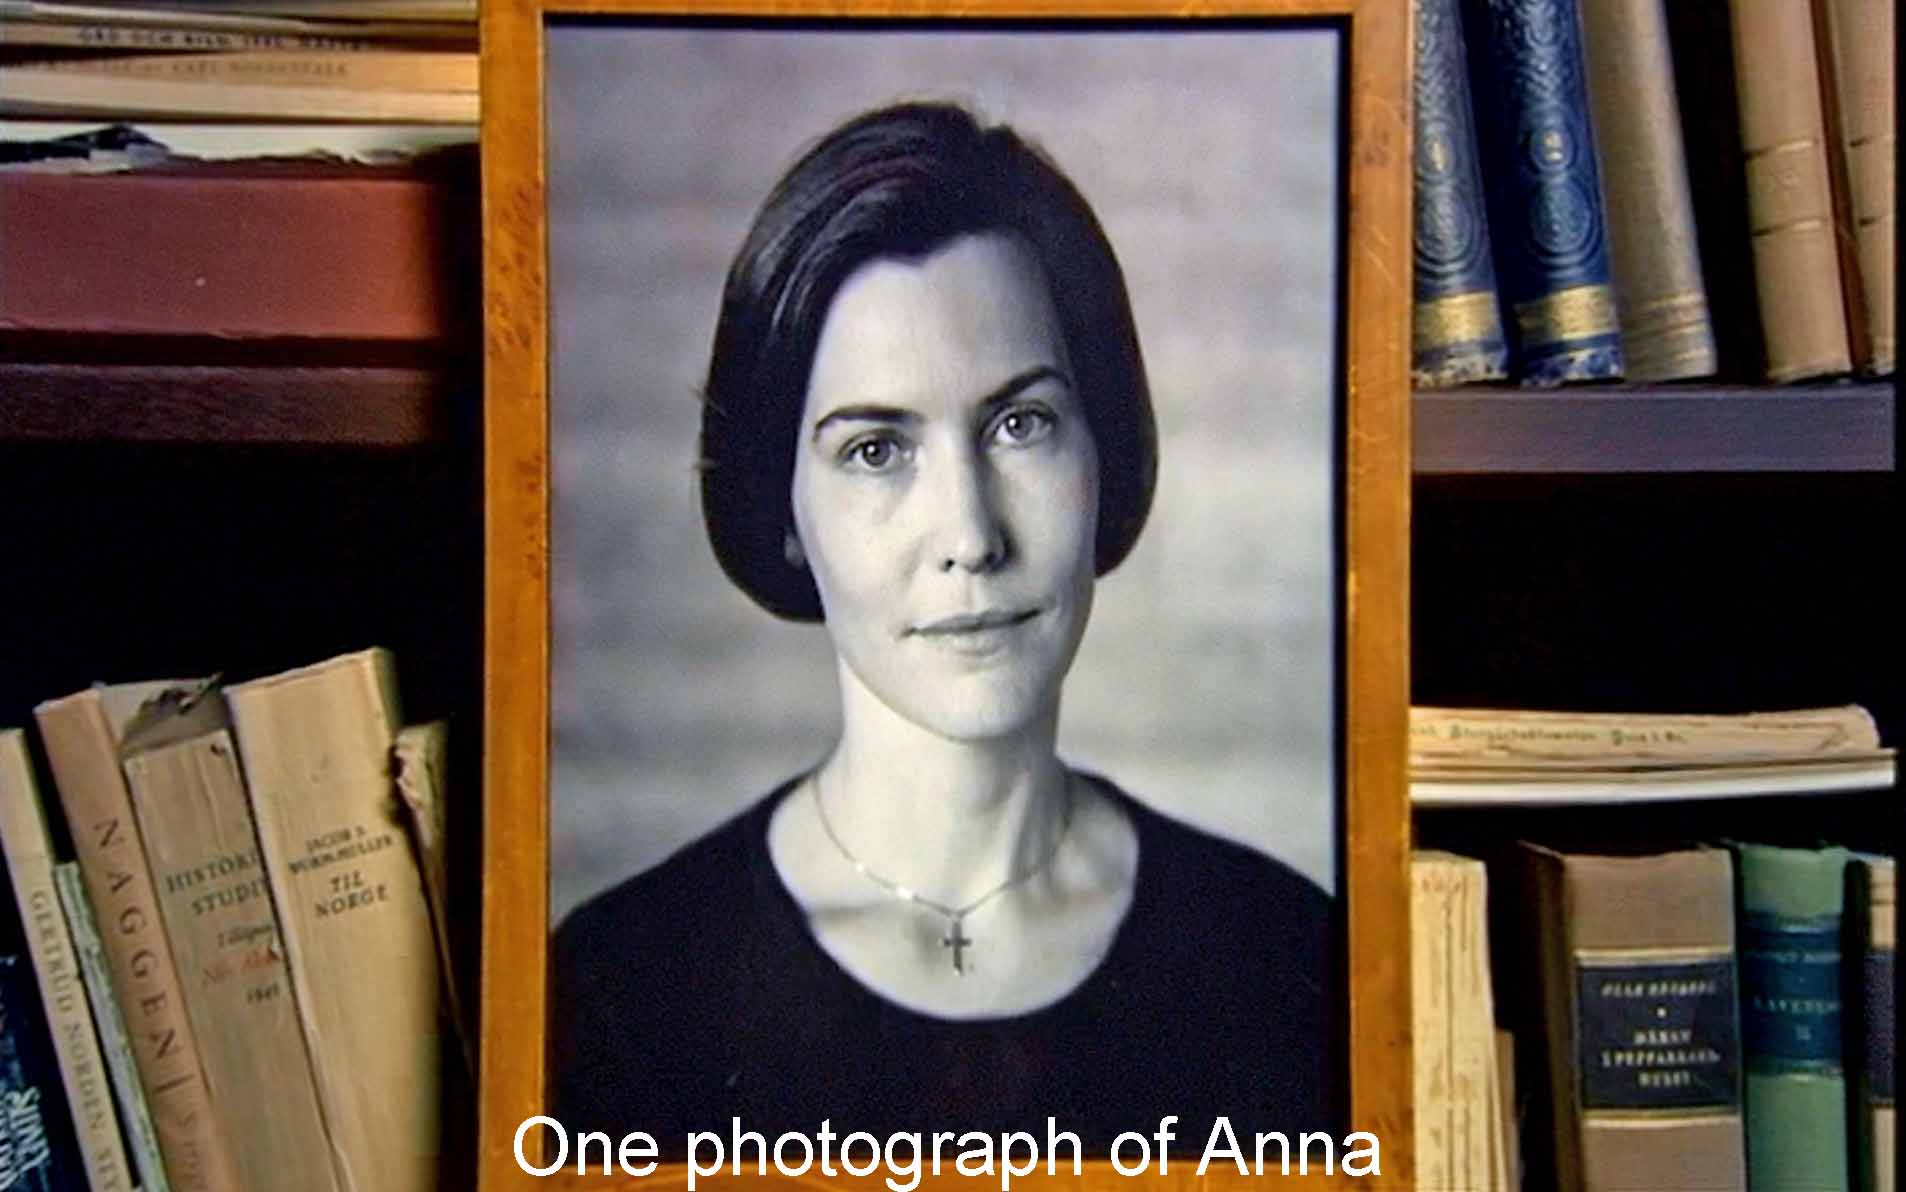 One photograph of Anna